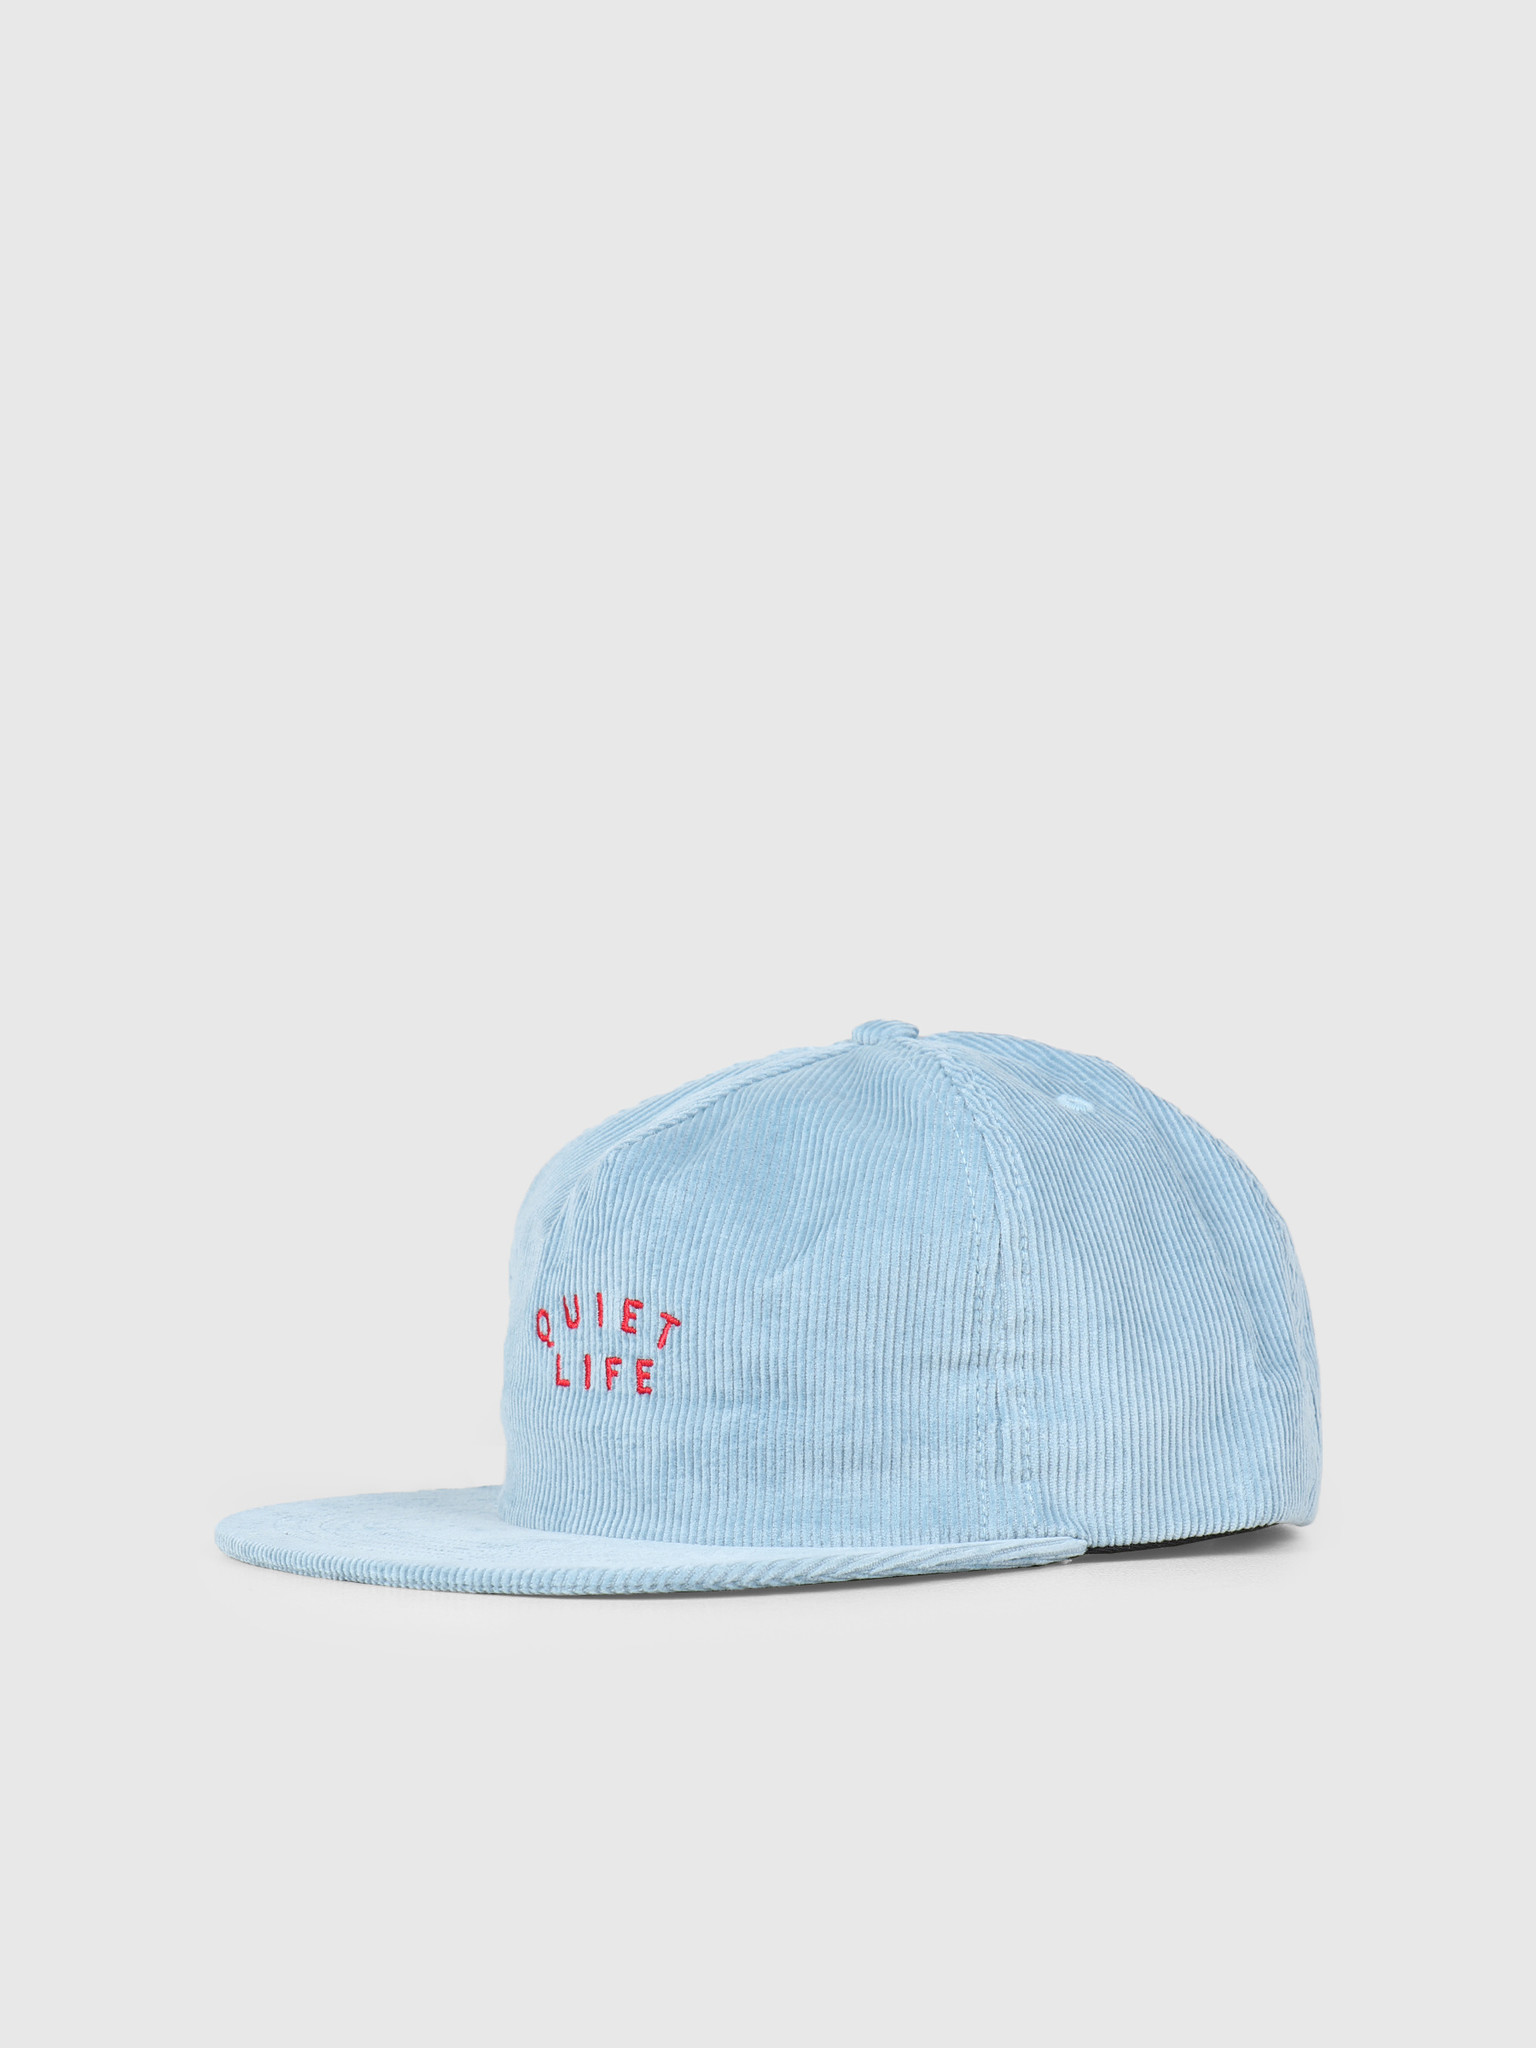 The Quiet Life The Quiet Life Standard Relaxed Snapback - USA Blue 19SPD1-1226-BLU-OS